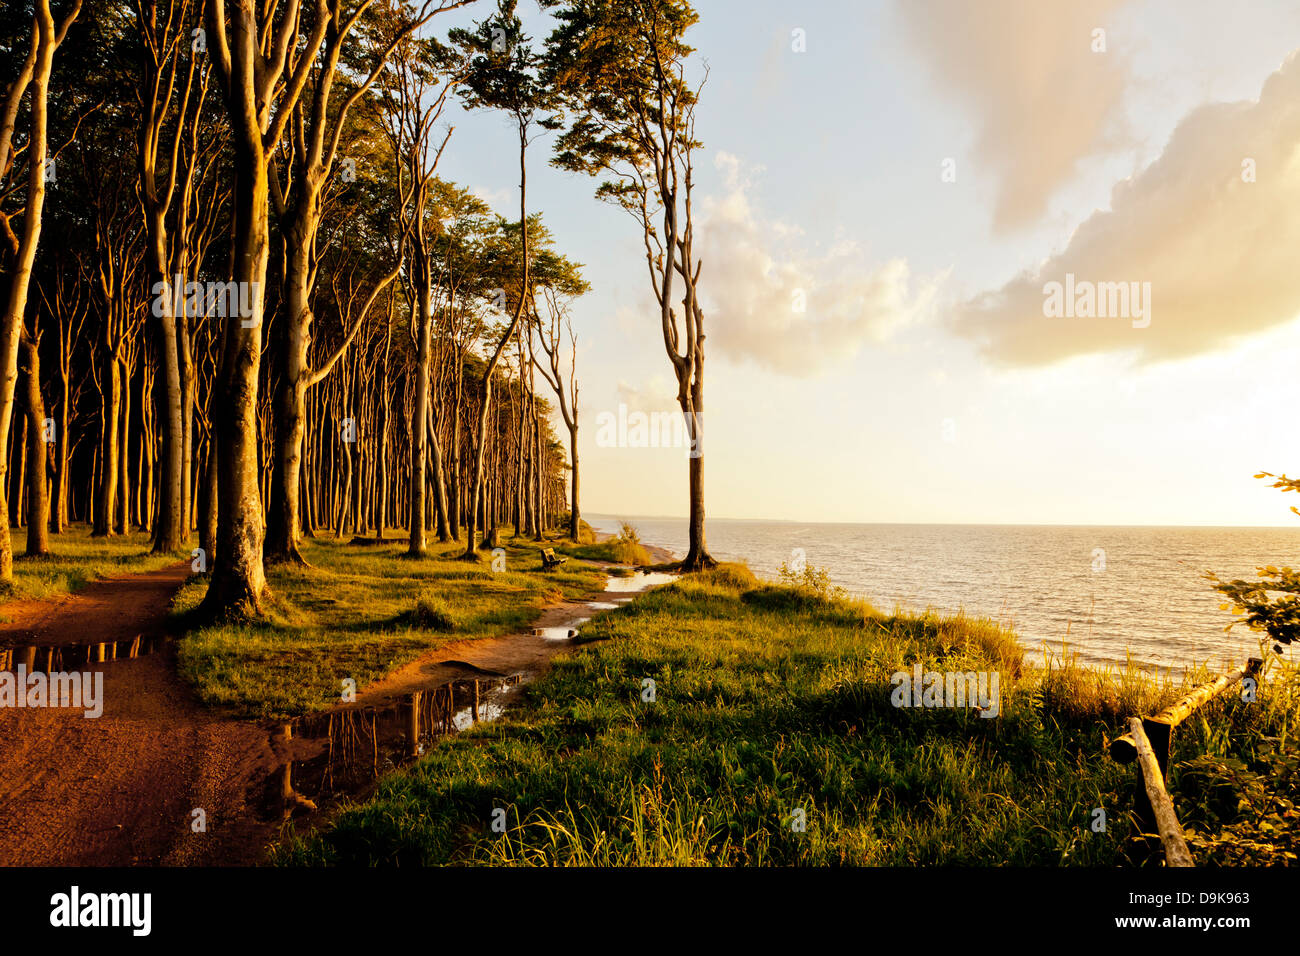 Baltic sea coast at Ostseebad Nienhagen with Haunted Woods at sunset - Stock Image